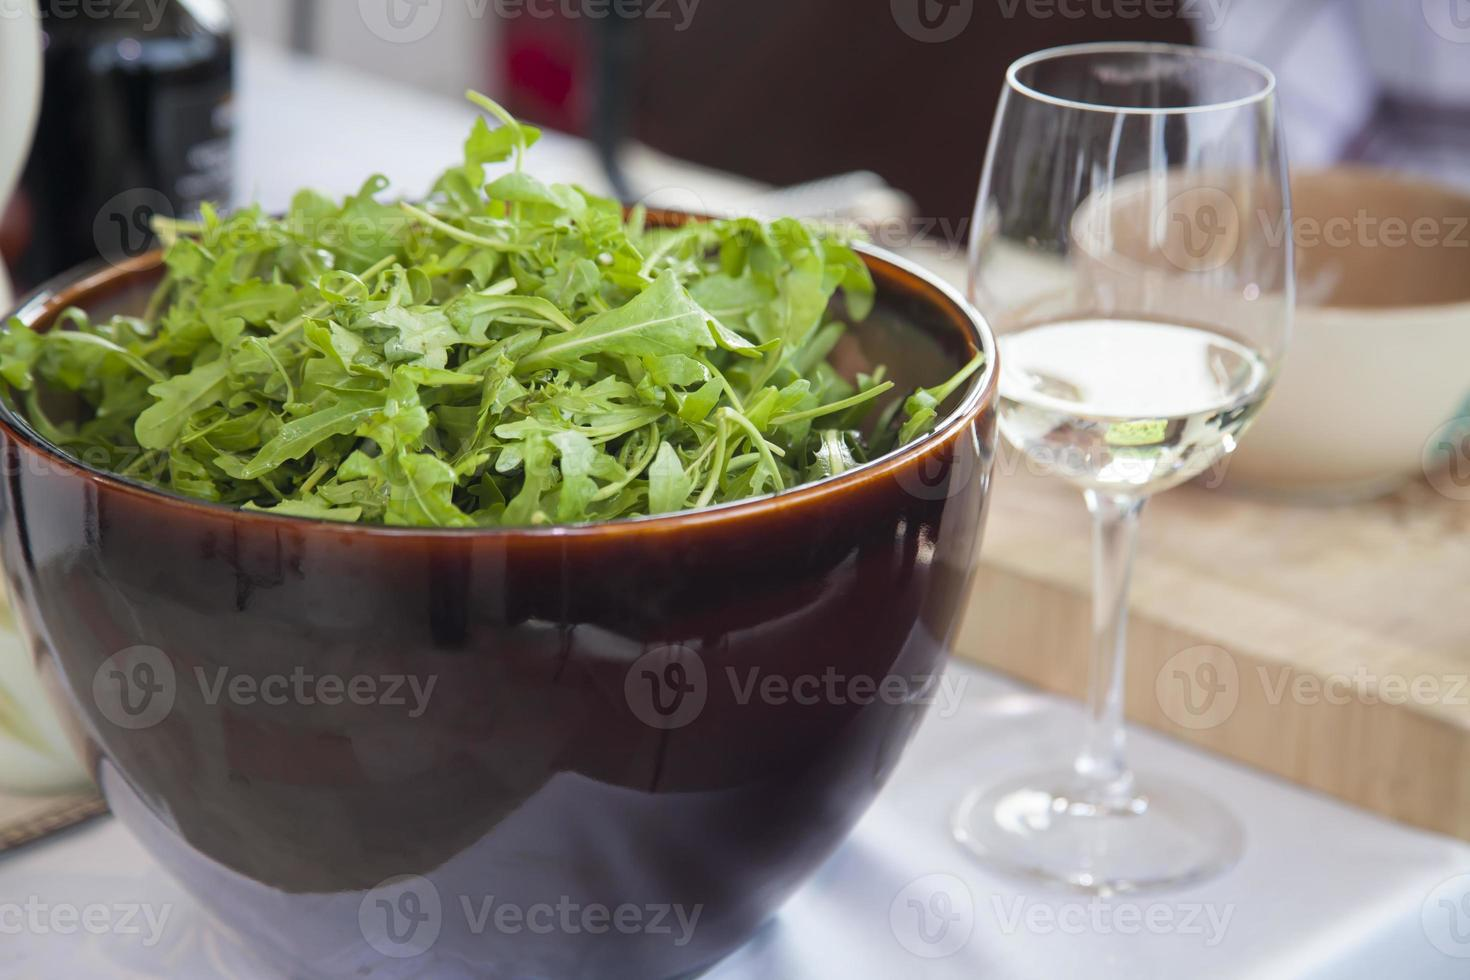 Rucola in a bowl and glass of wine. photo